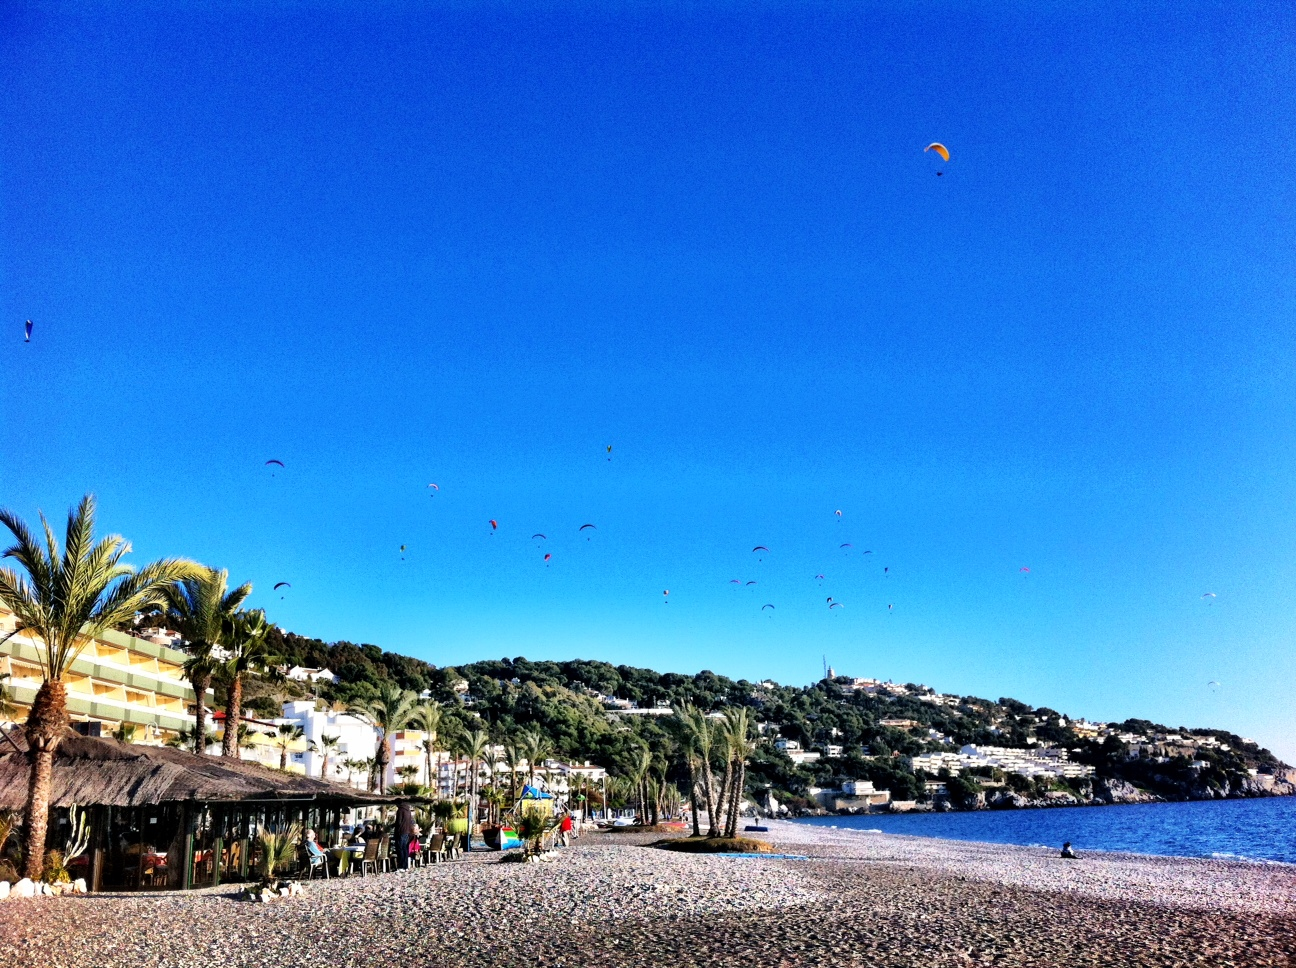 Paragliders Circling the Beach at Salobreña, Costa Tropical